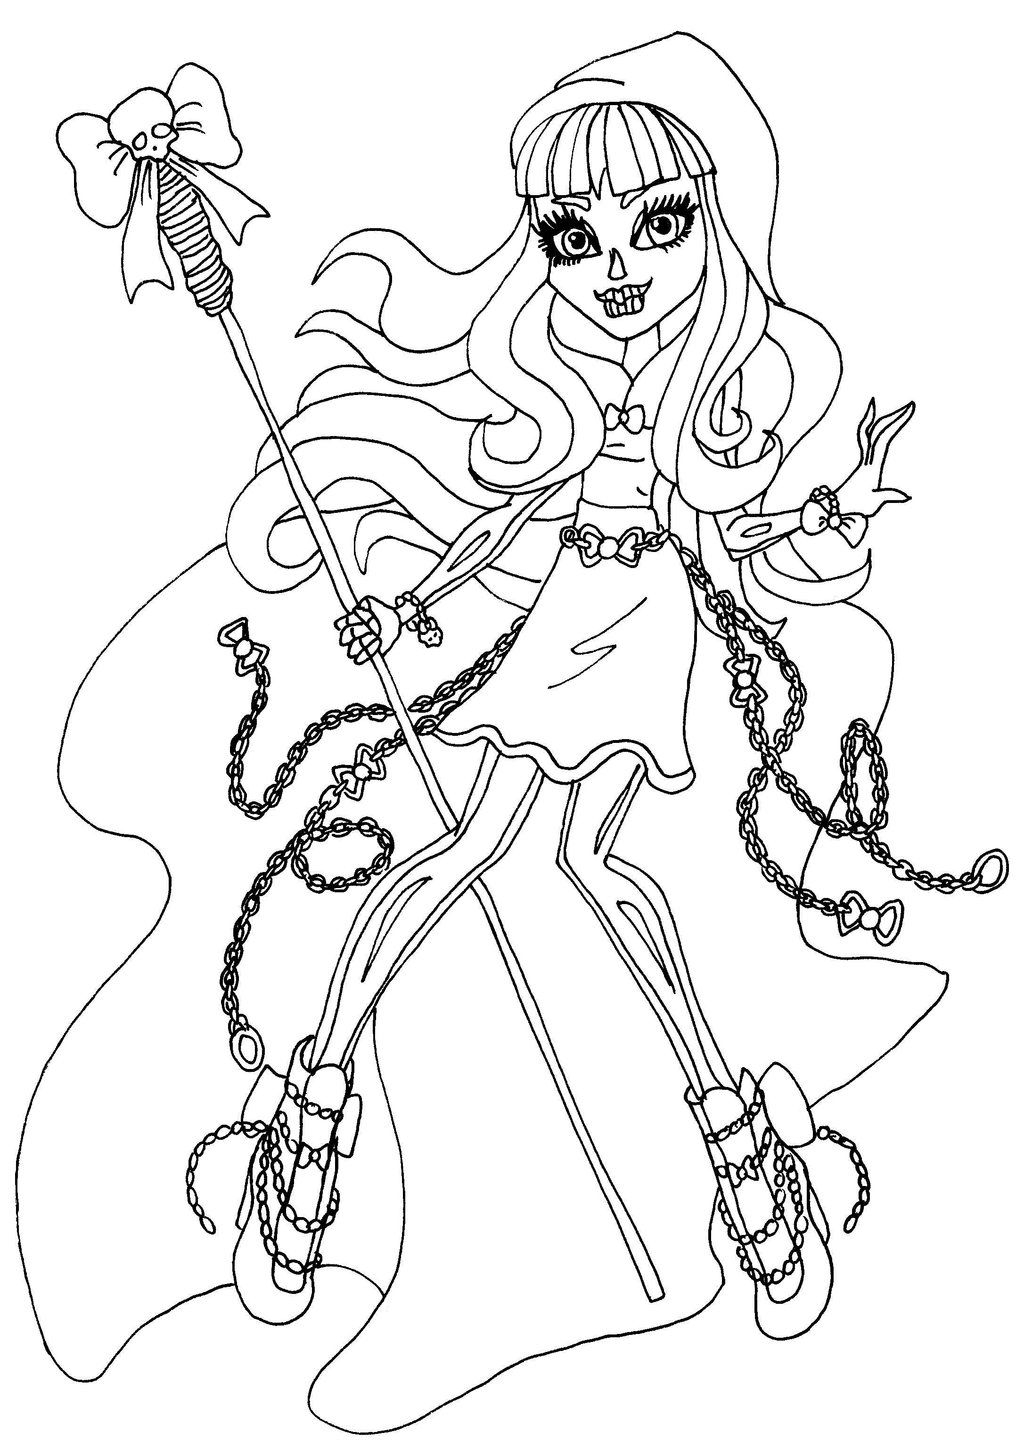 Best Monster High Coloring Pages Printable Print Color Craft Pic to Print Of Wydowna Spider by Elfkena On Deviantart to Print